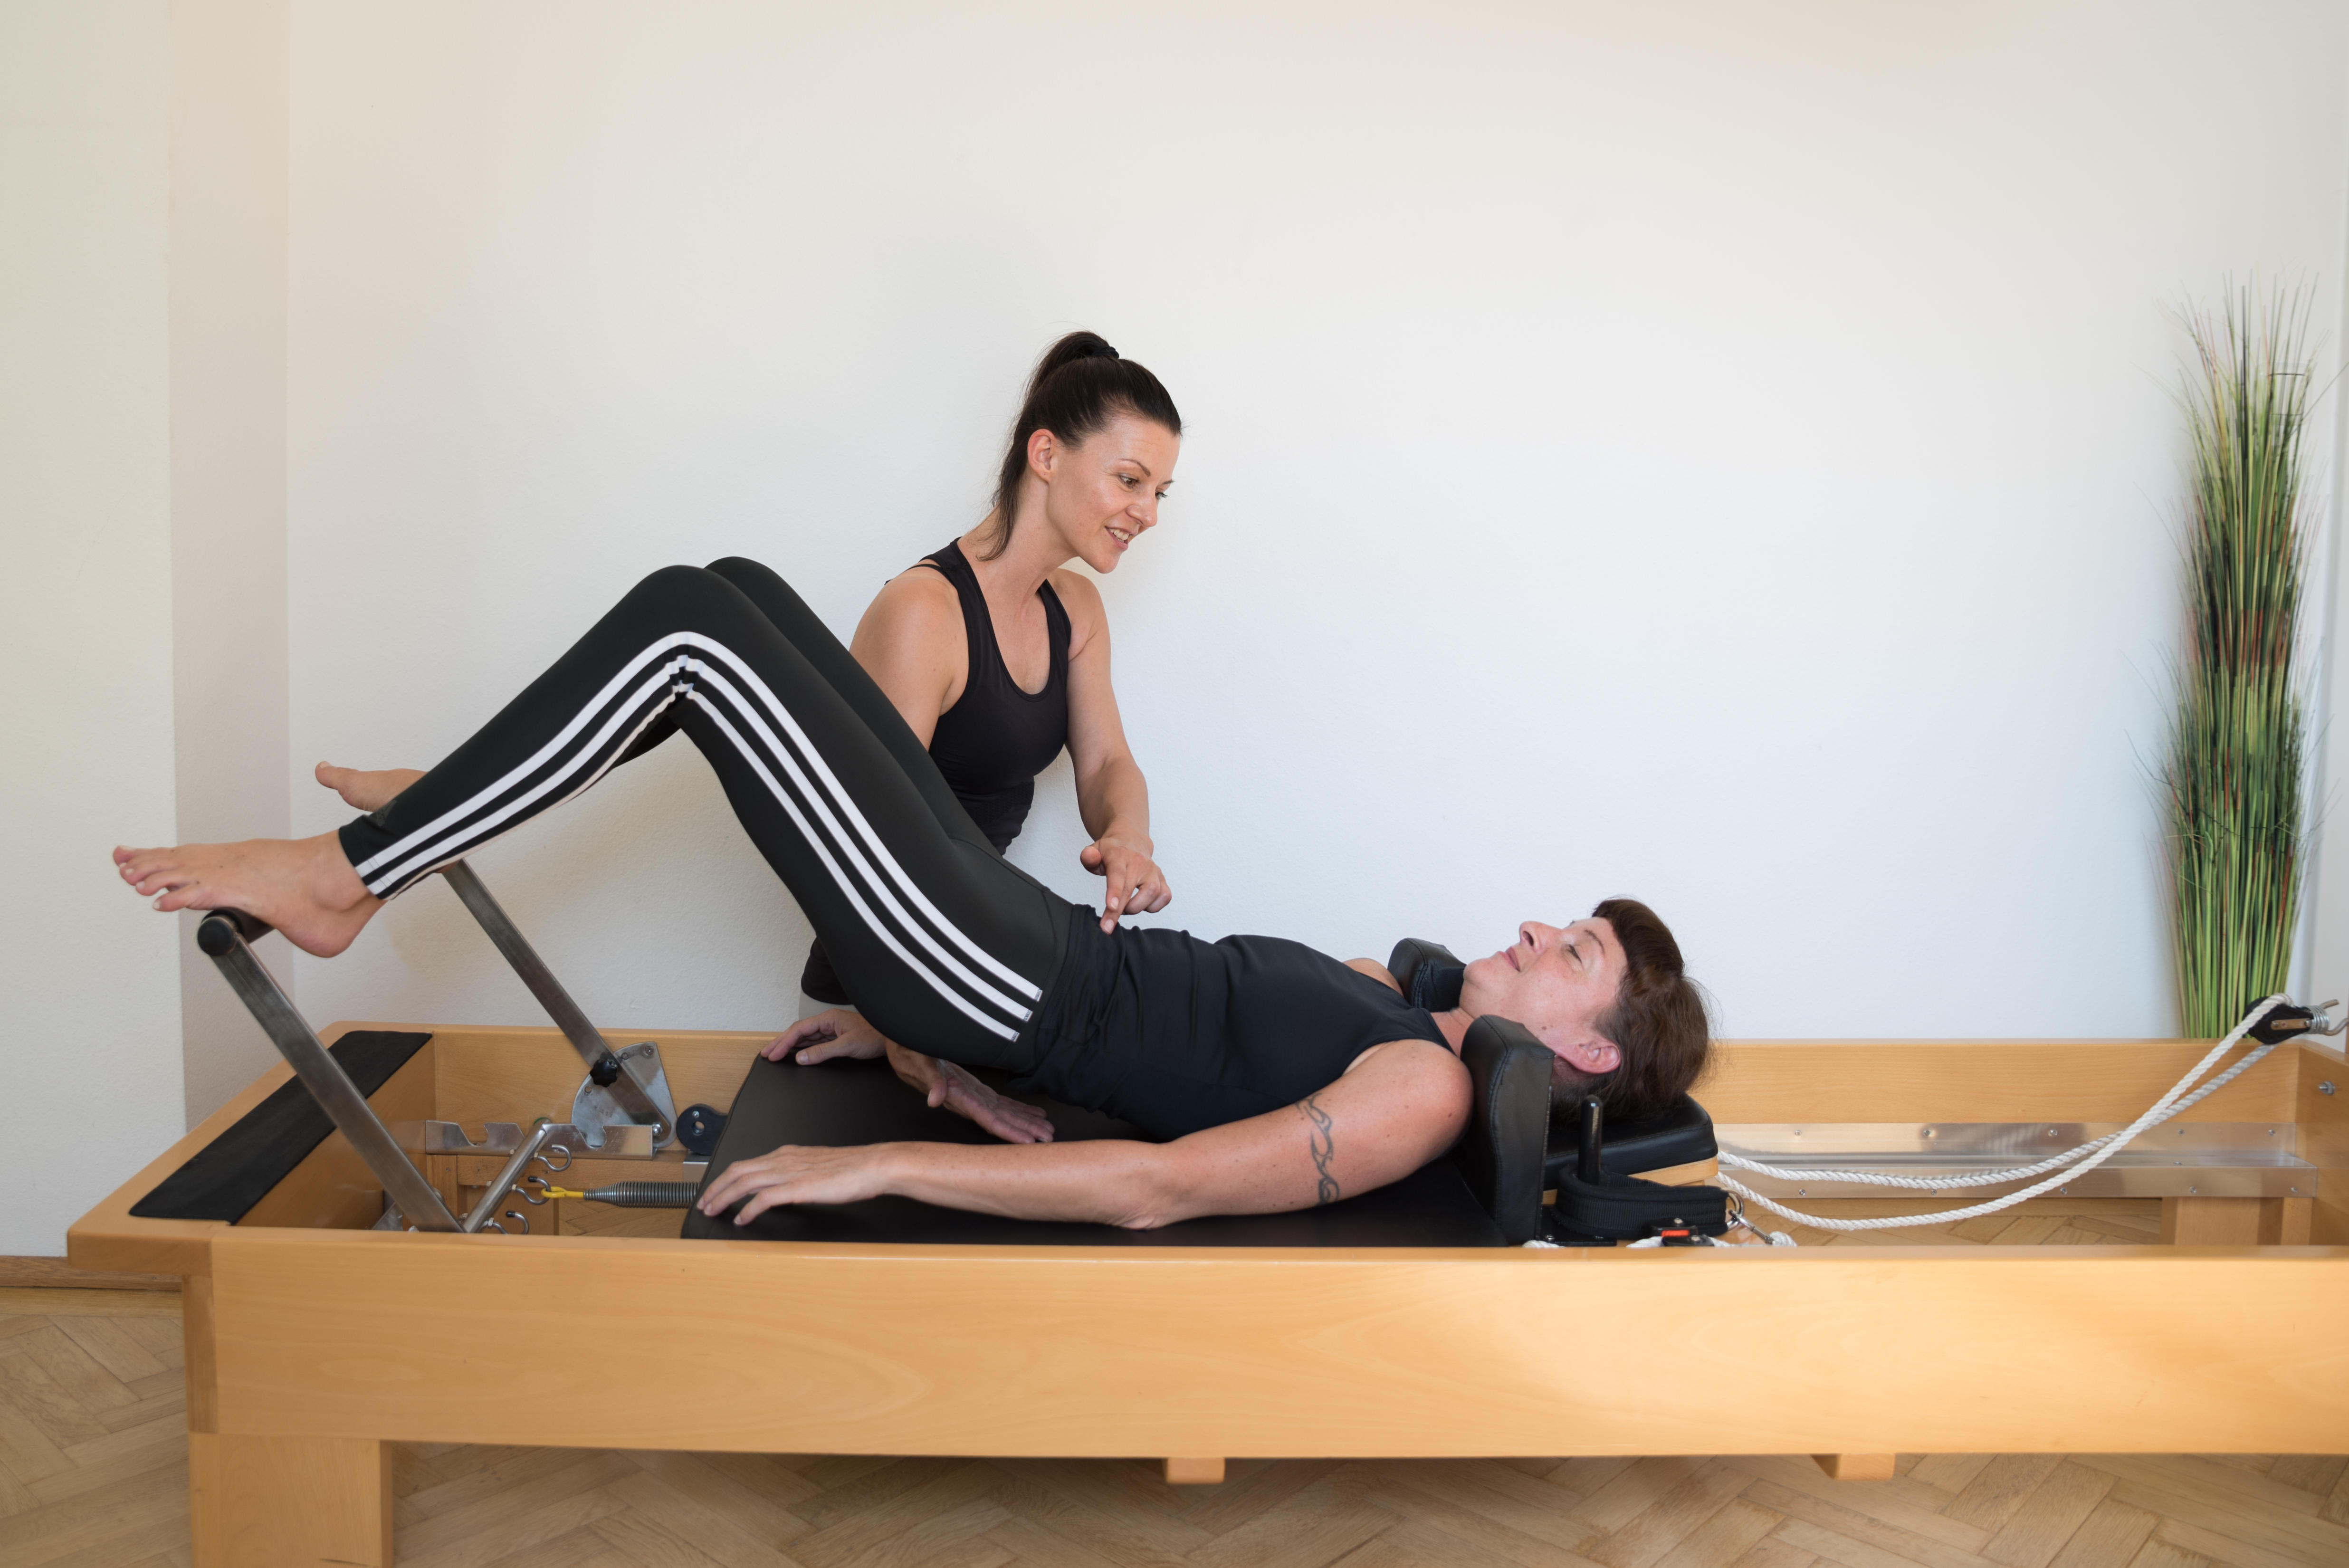 Personal Pilates Training Reformer